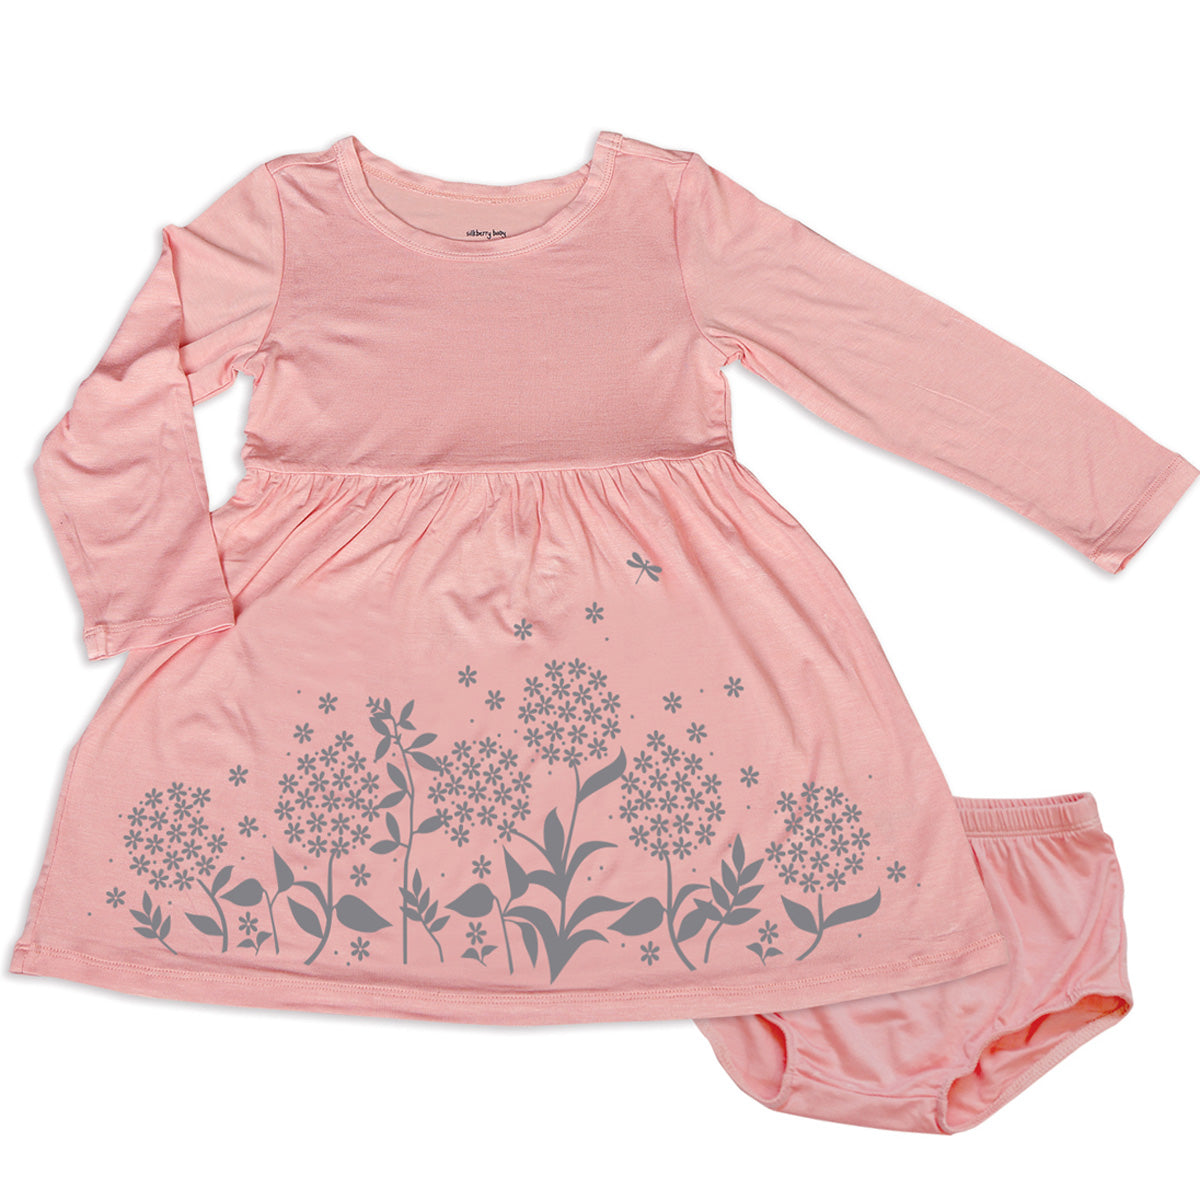 Silkberry Baby Bamboo Dress with Bloomer - Powder Pink